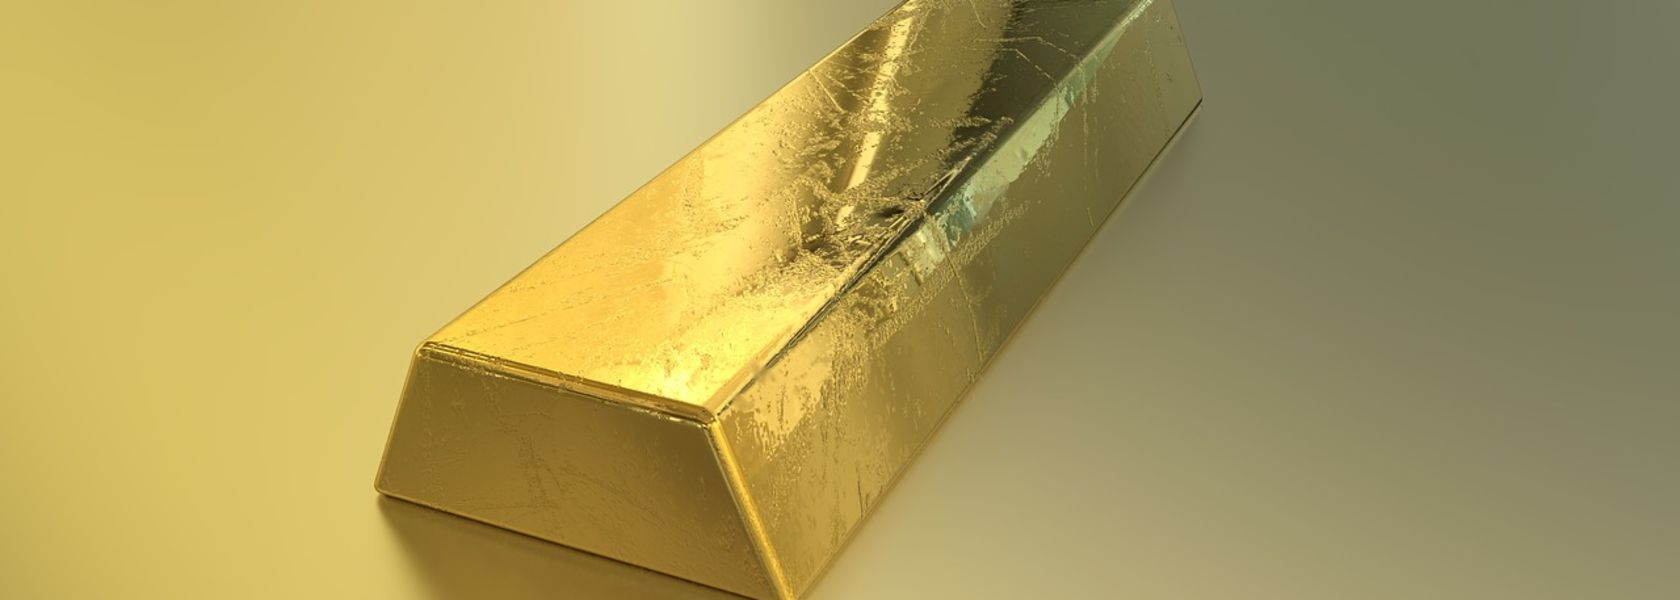 Gold costs expected to fall along with production